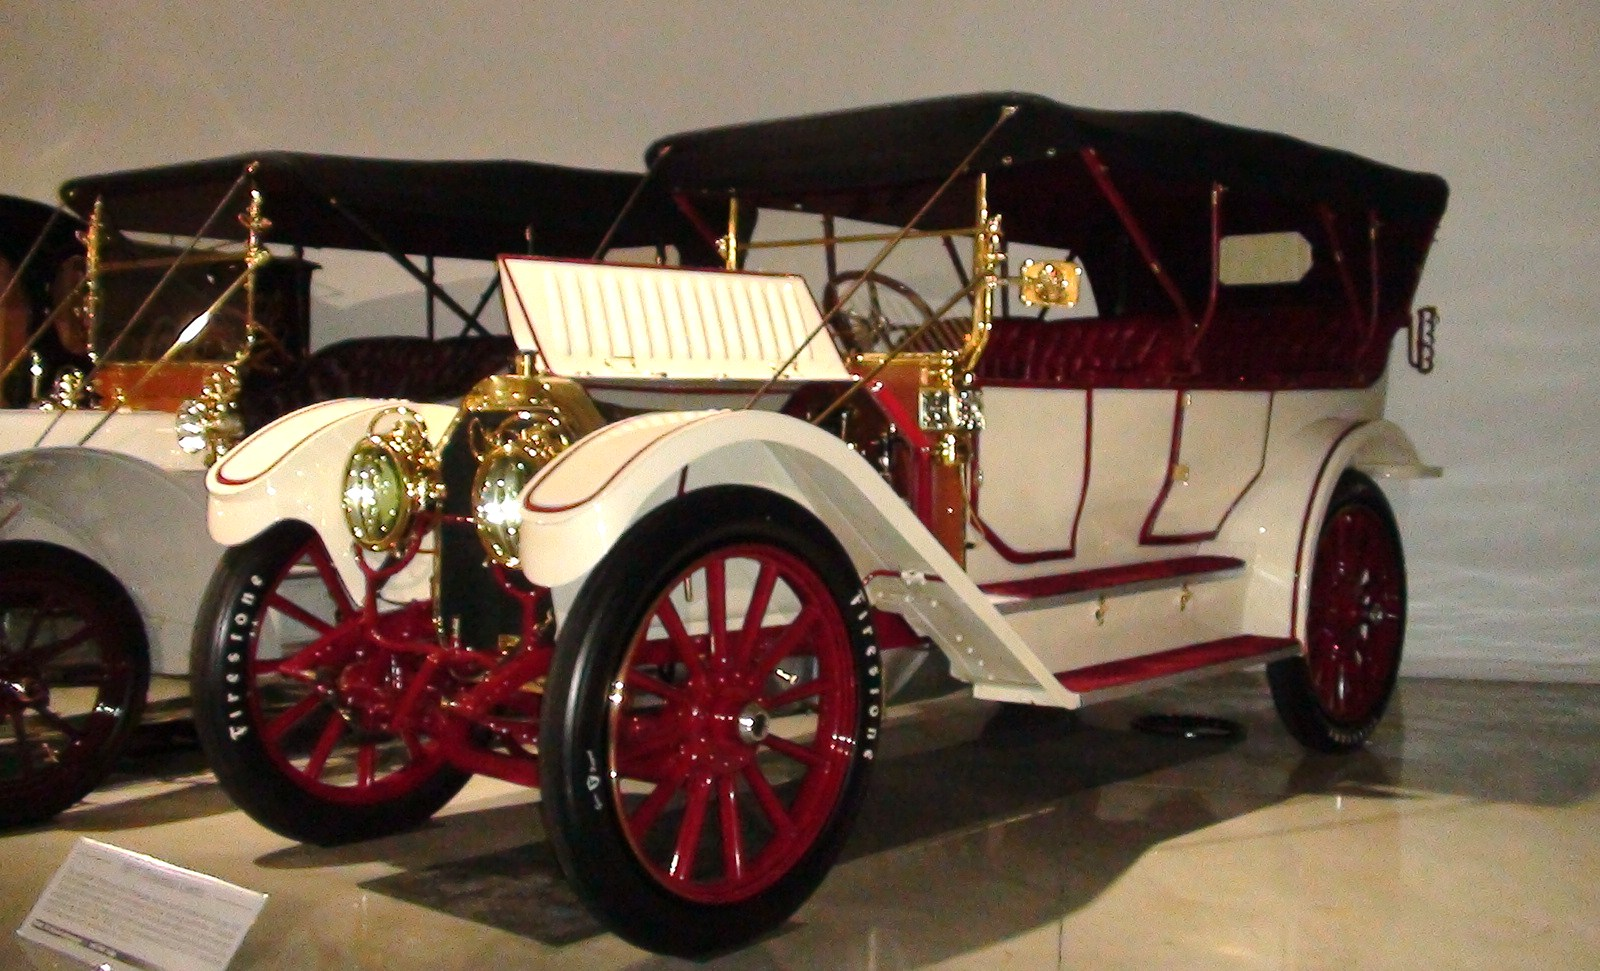 File:GM Heritage Center - 061 - Cars - Brass Olds.jpg - Wikimedia ...